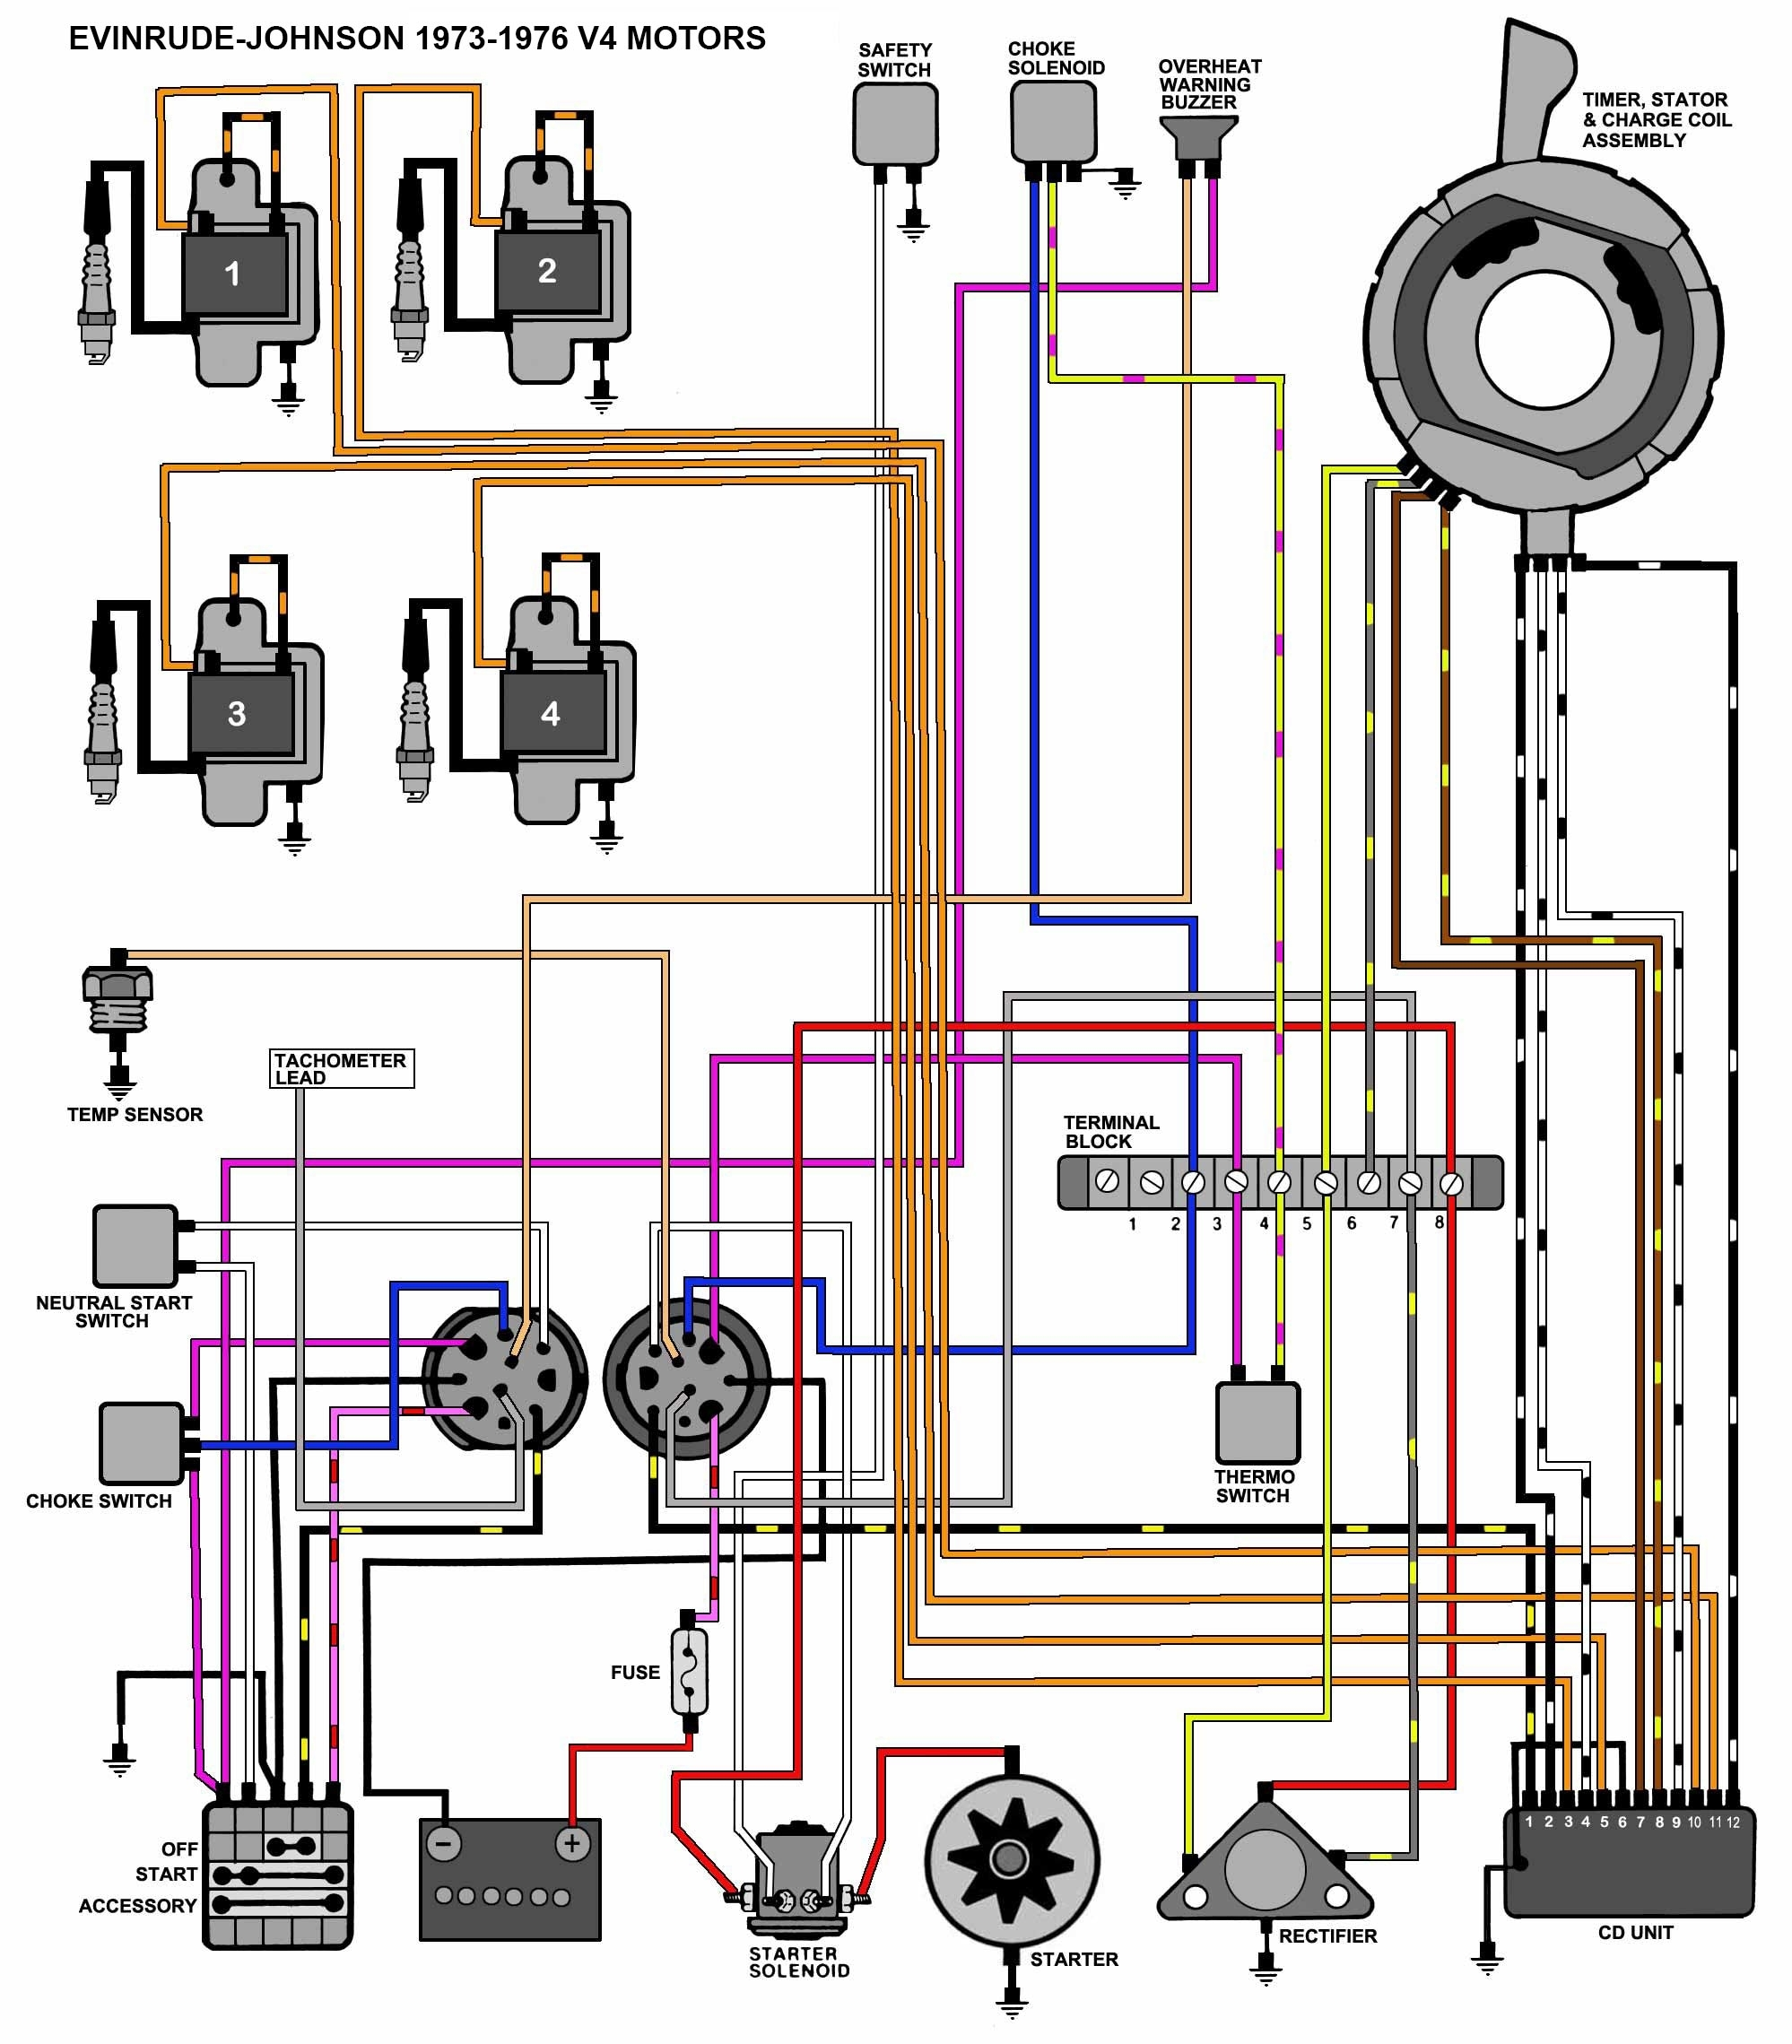 evinrude ignition switch wiring diagram with 1969 omc 55 wiring throughout 70 hp evinrude wiring diagram?resize\=665%2C759\&ssl\=1 wiring diagram for 1983 starcraft starcraft trailer wiring diagram  at bayanpartner.co